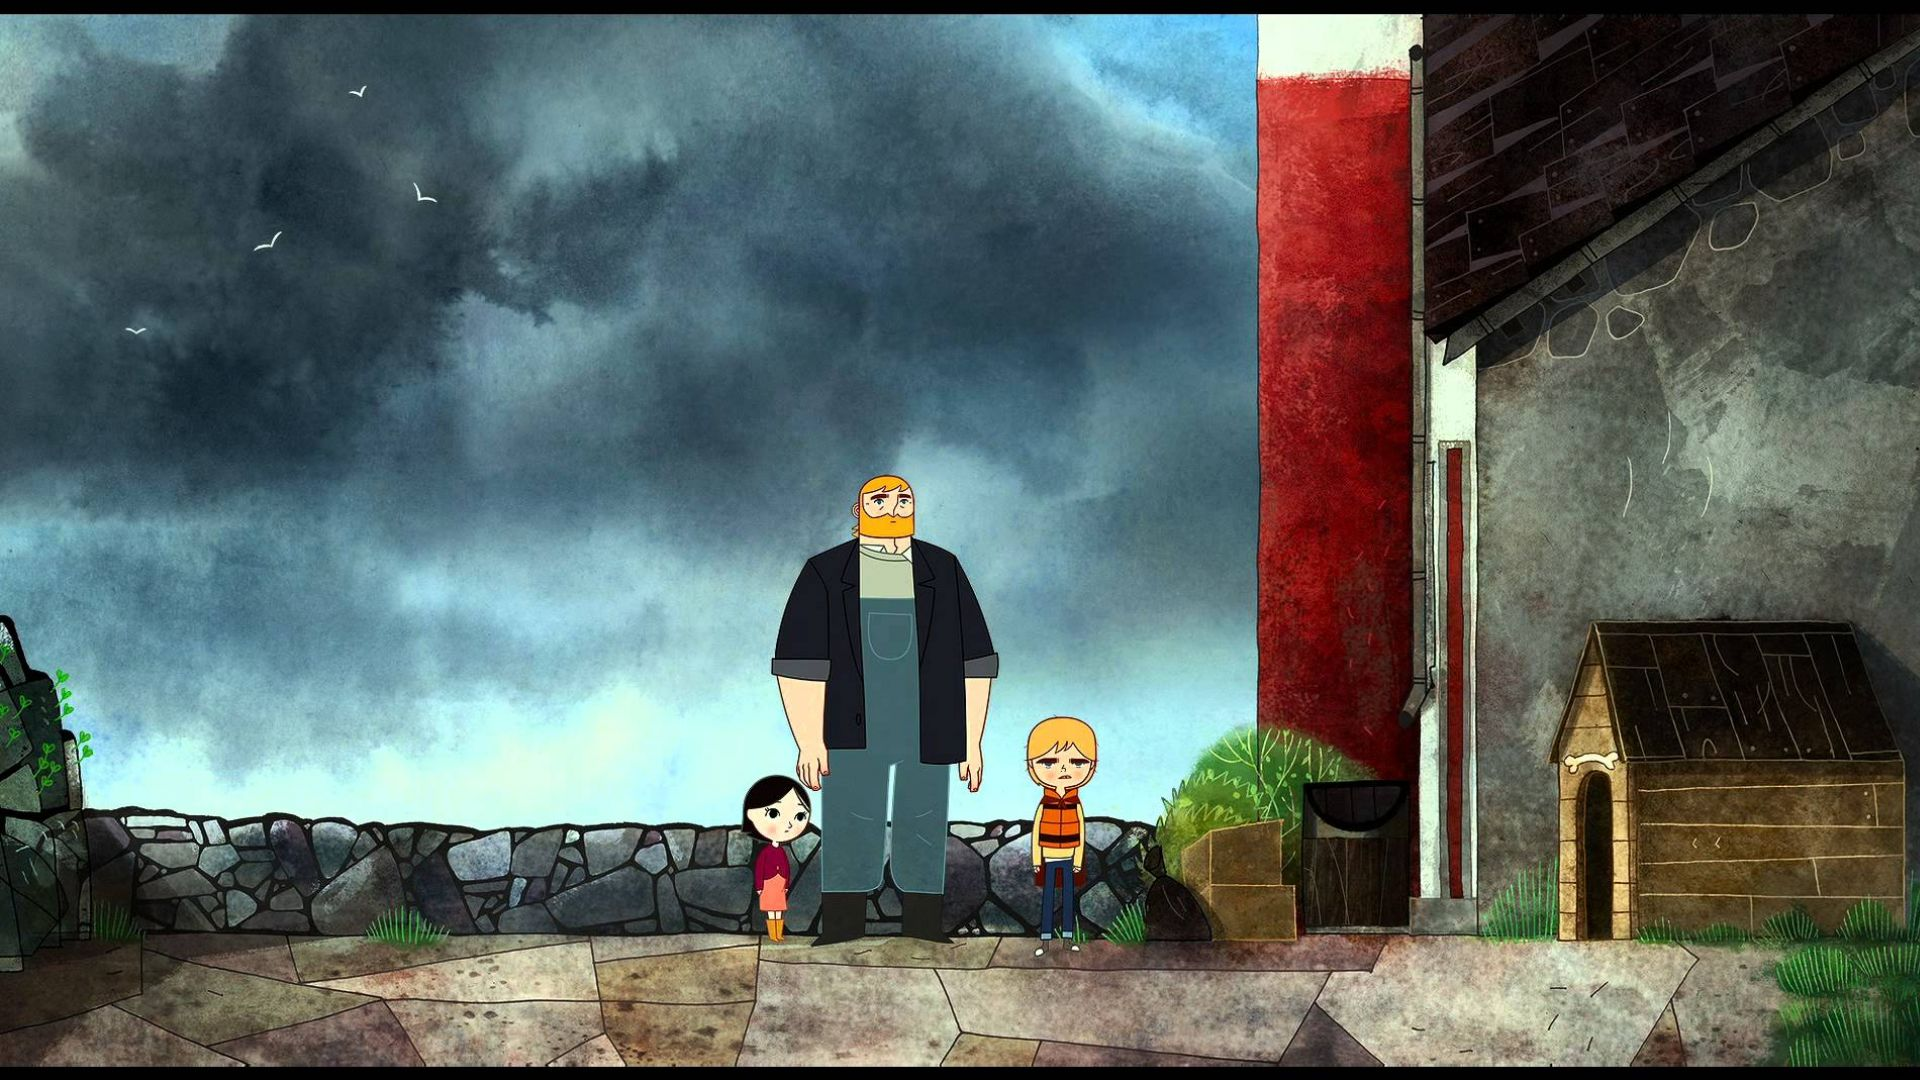 New Trailer for the Beautiful Acclaimed Animation 'Song of t